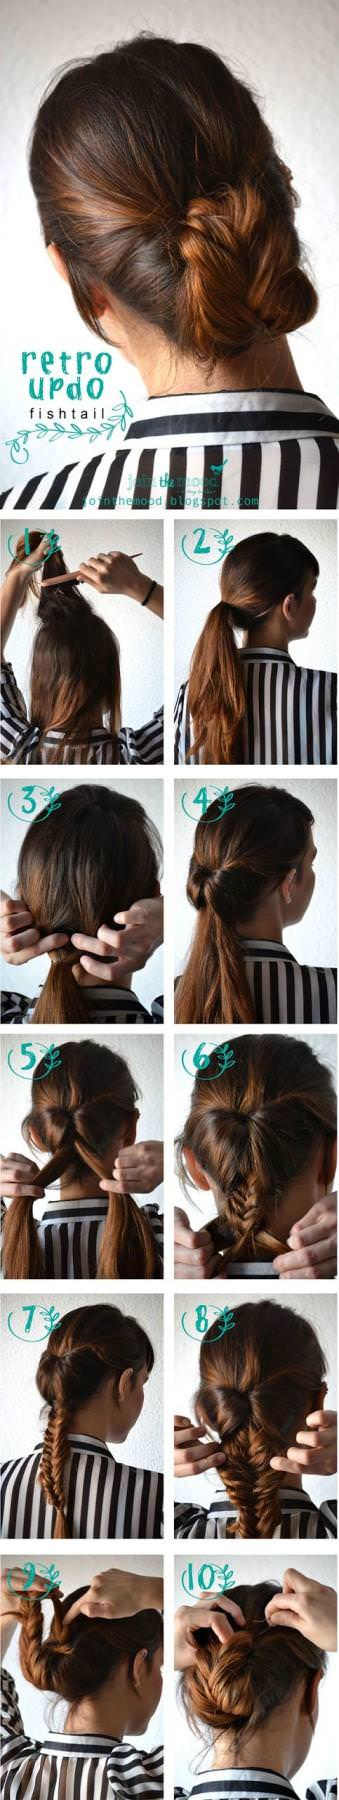 Retro-Updo-Fishtail